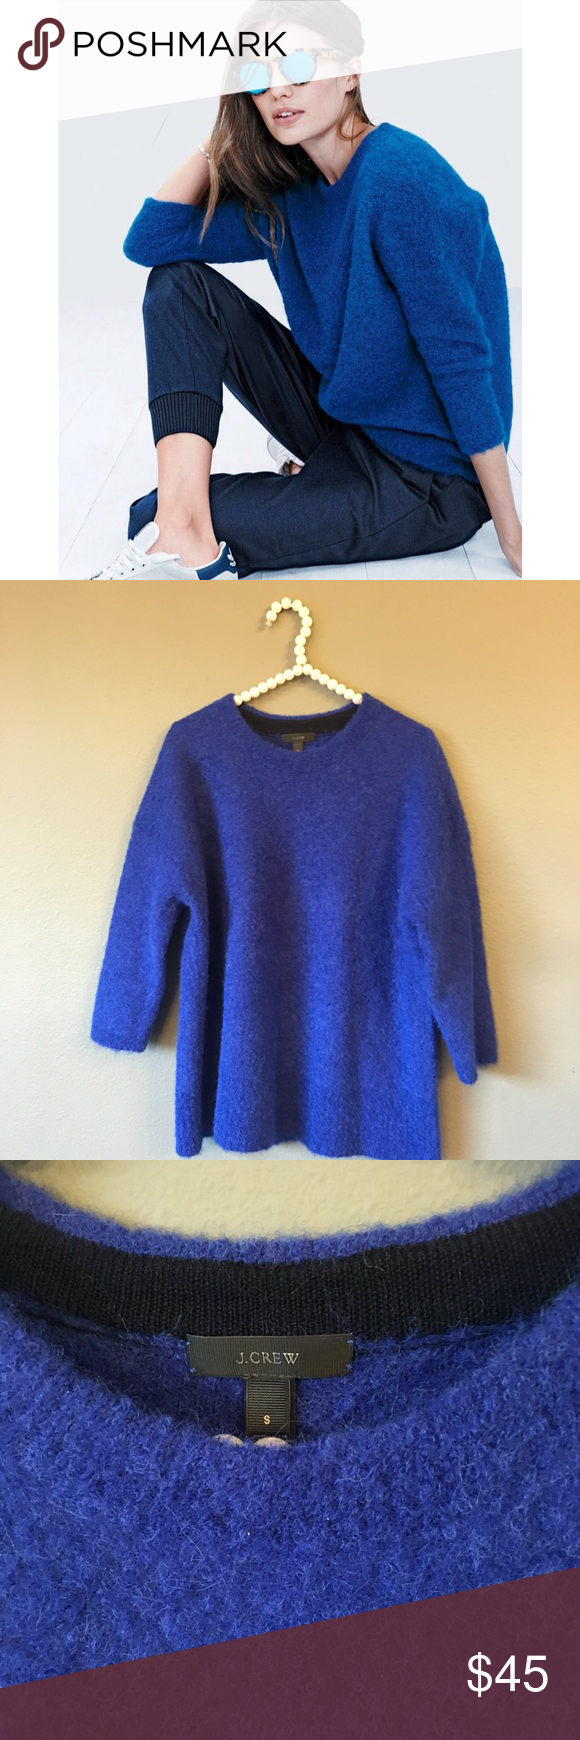 J. Crew Mohair Blue Fuzzy Pullover Sweater | Royal blue, Pullover ...